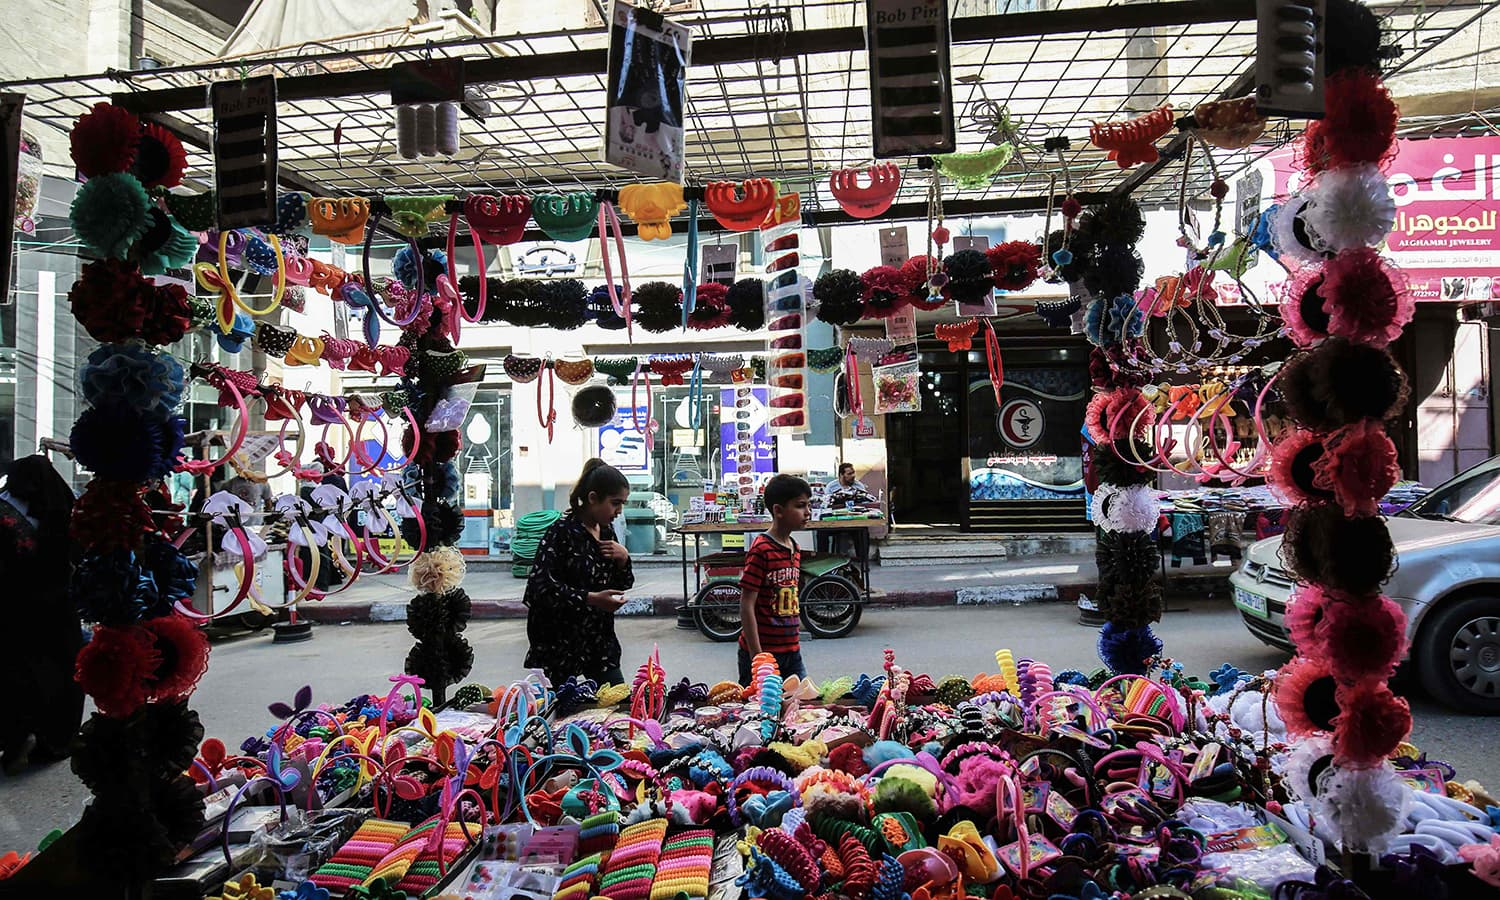 Palestinians shop at a market in Khan Yunis in the southern Gaza Strip a day before the start of the holy Muslim month of Ramazan. — AFP